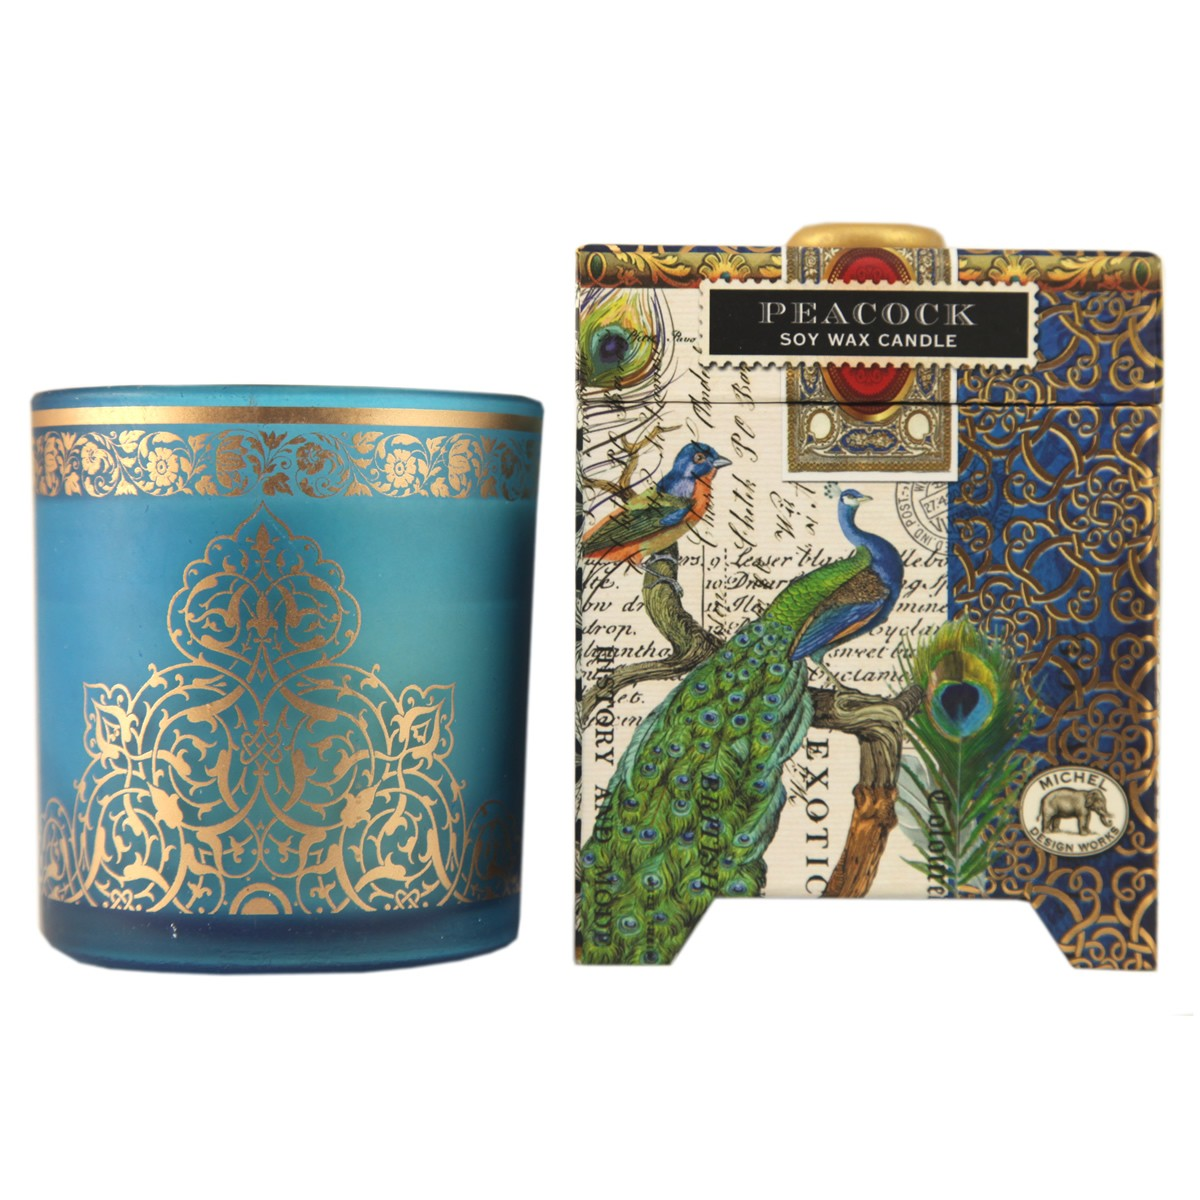 Michel Design Works Peacock Small Soy Wax Candle